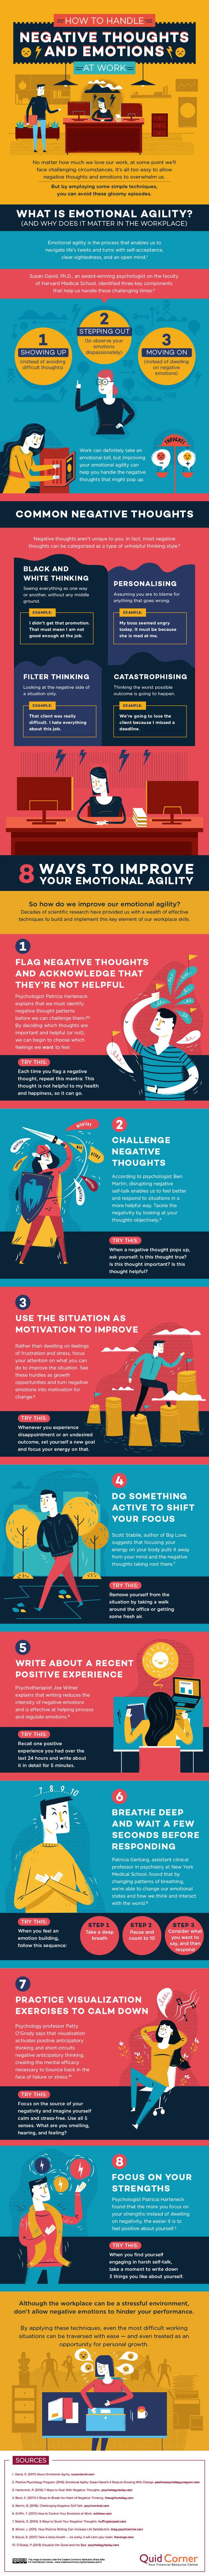 180126 infographic how to handle negative thoughts at work - How to handle negative thoughts and emotions at work